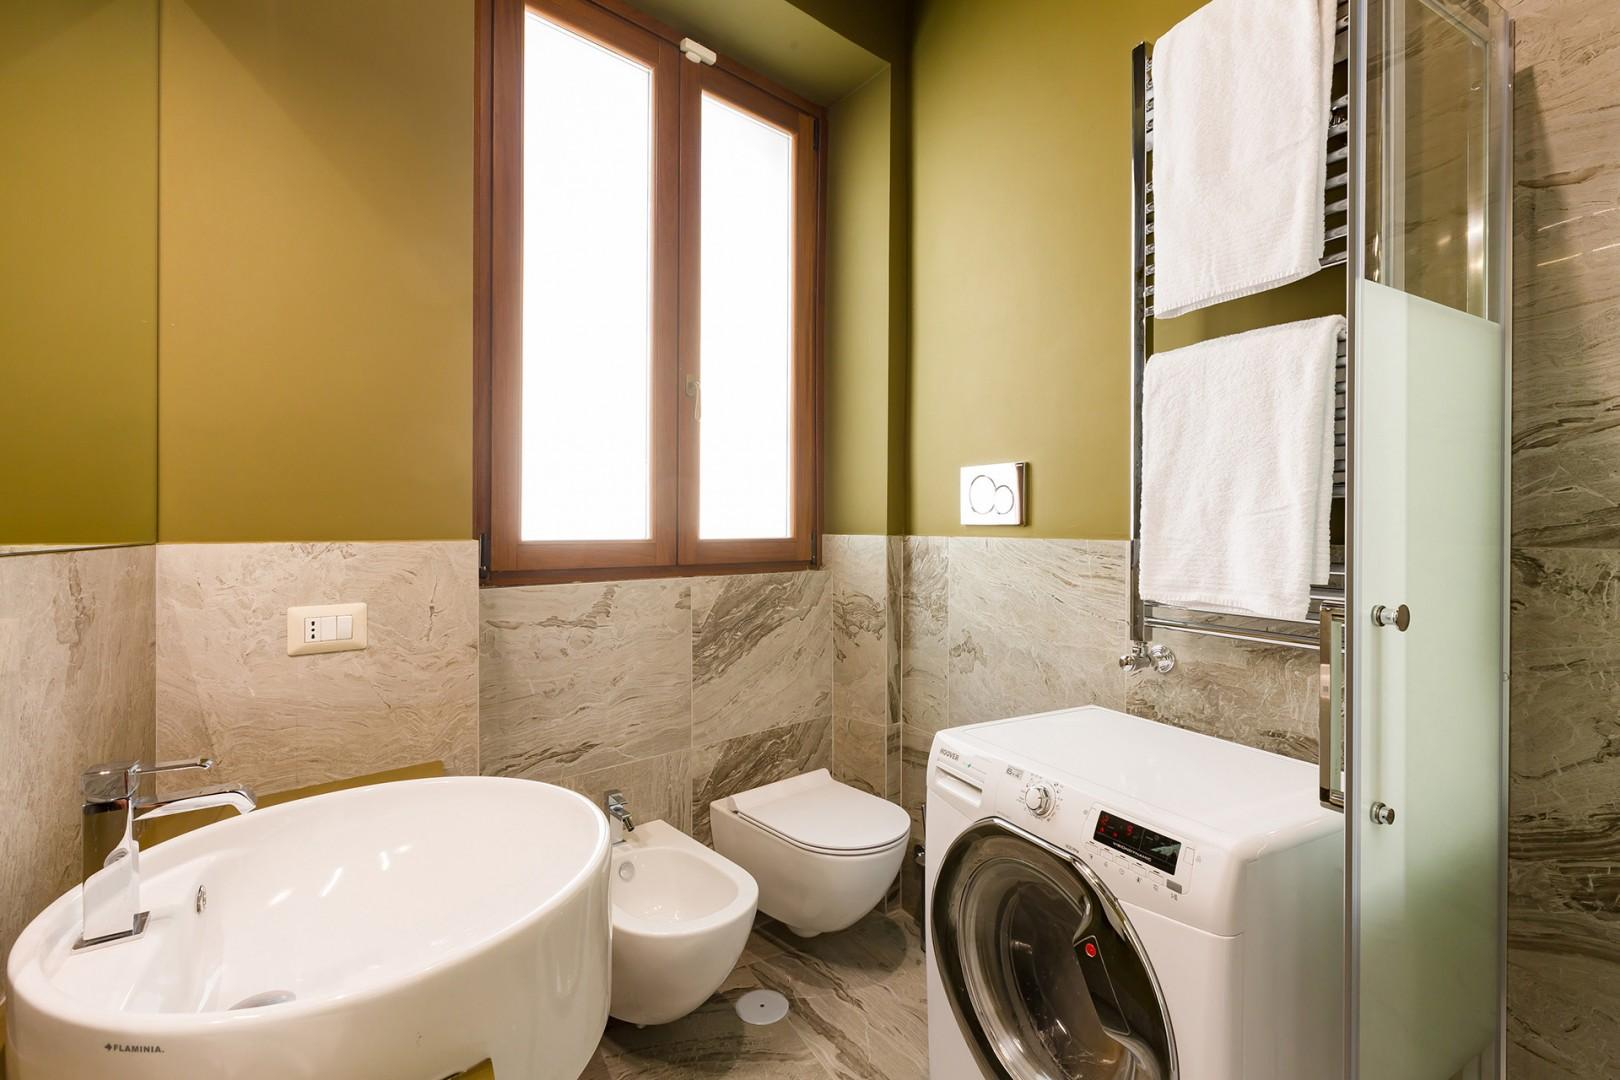 Bathroom 2 has a combination washer and dryer.